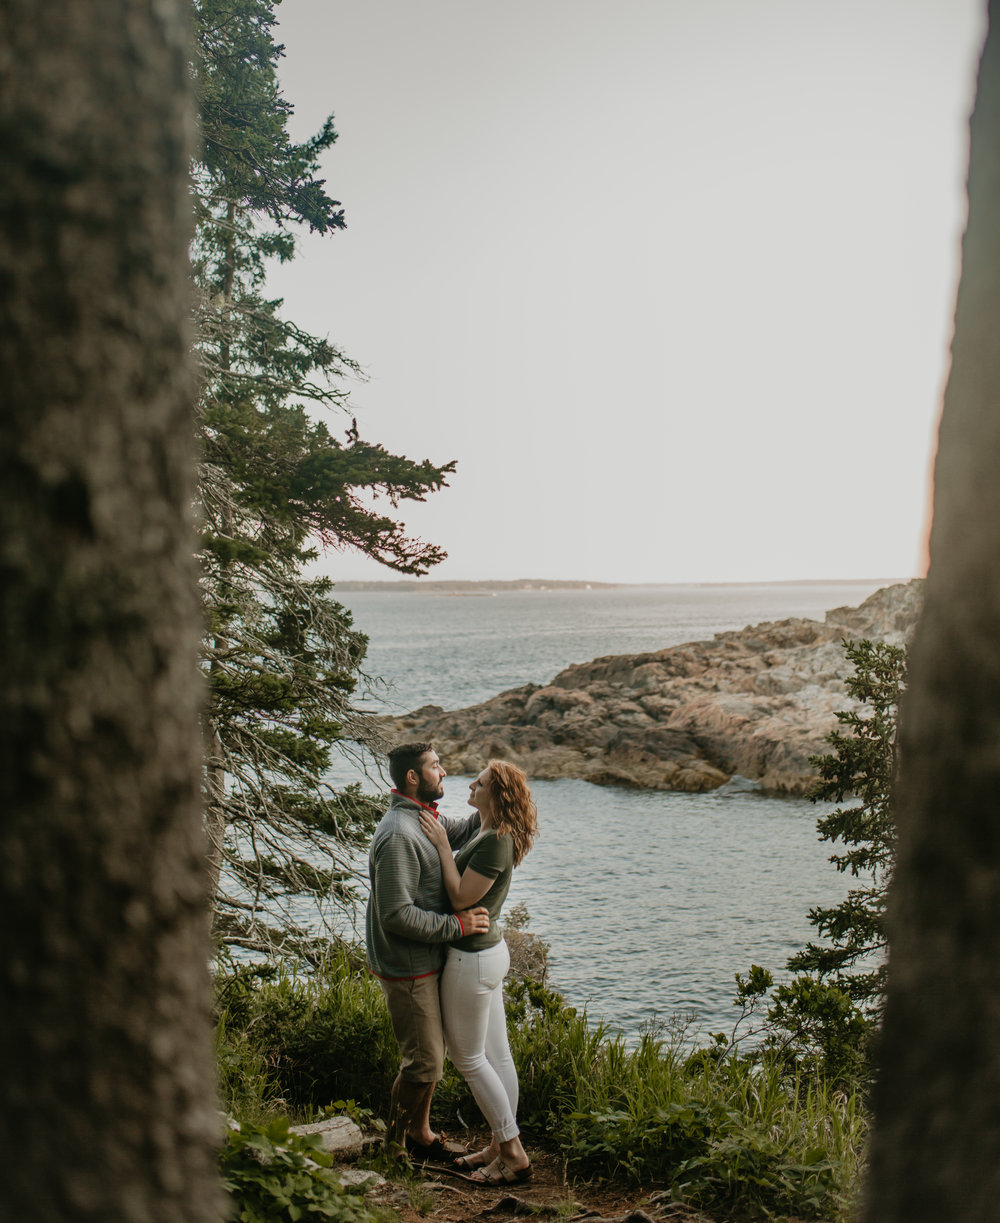 nicole-daacke-photography-acadia-national-park-engagement-photos-session-little-hunters-beach-sunset-cadillac-mountain-thunder-hole-otter-cliffs-couples-session-acadia-elopement-photographer-pine-trees-ocean-maine-42.jpg